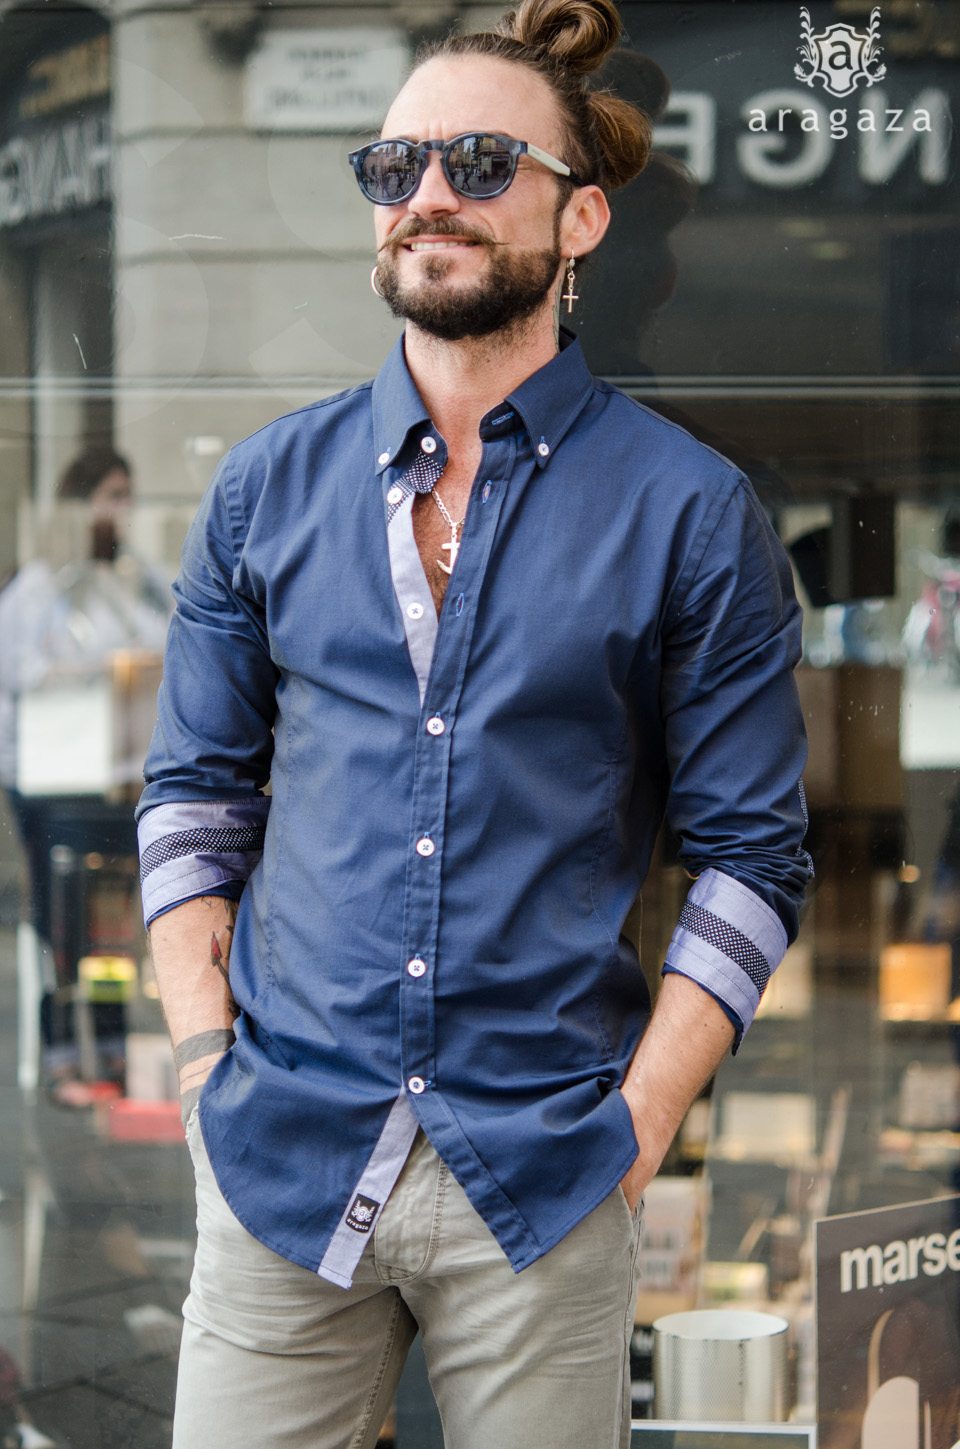 Viste de azul  | Aragaza - Your shirt made in Barcelona - Quality shirts